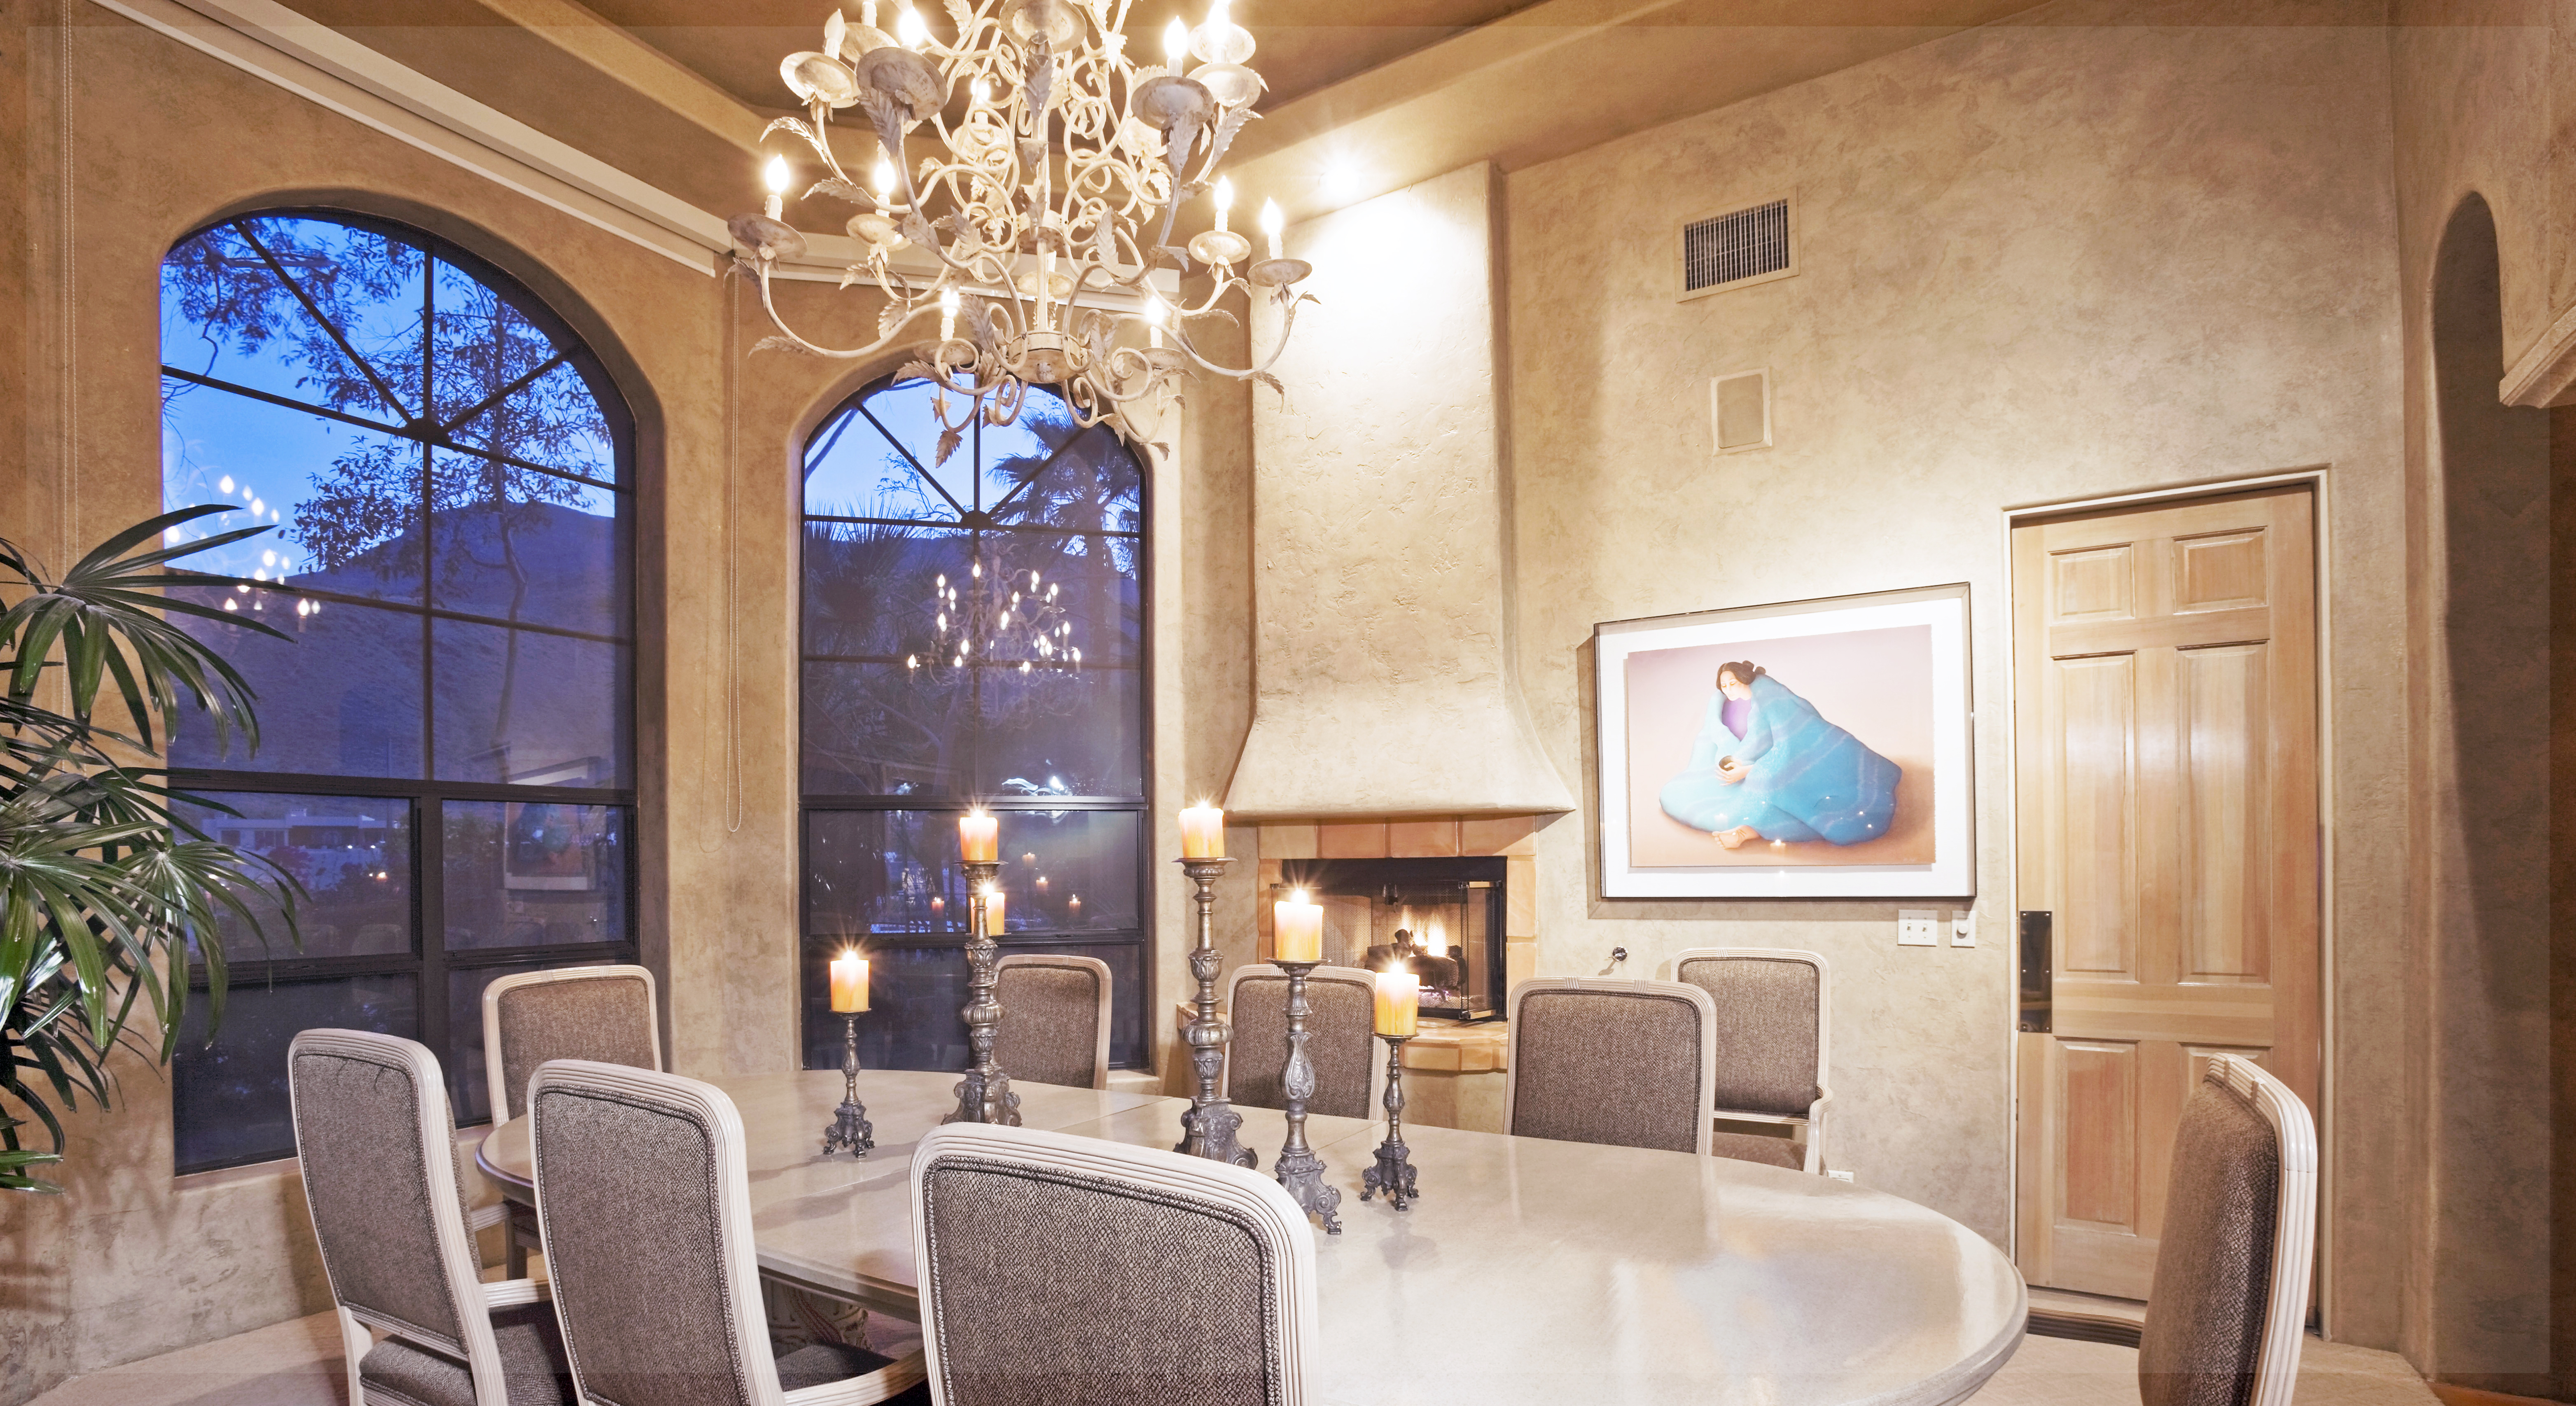 How to Safely Move a Crystal Chandelier